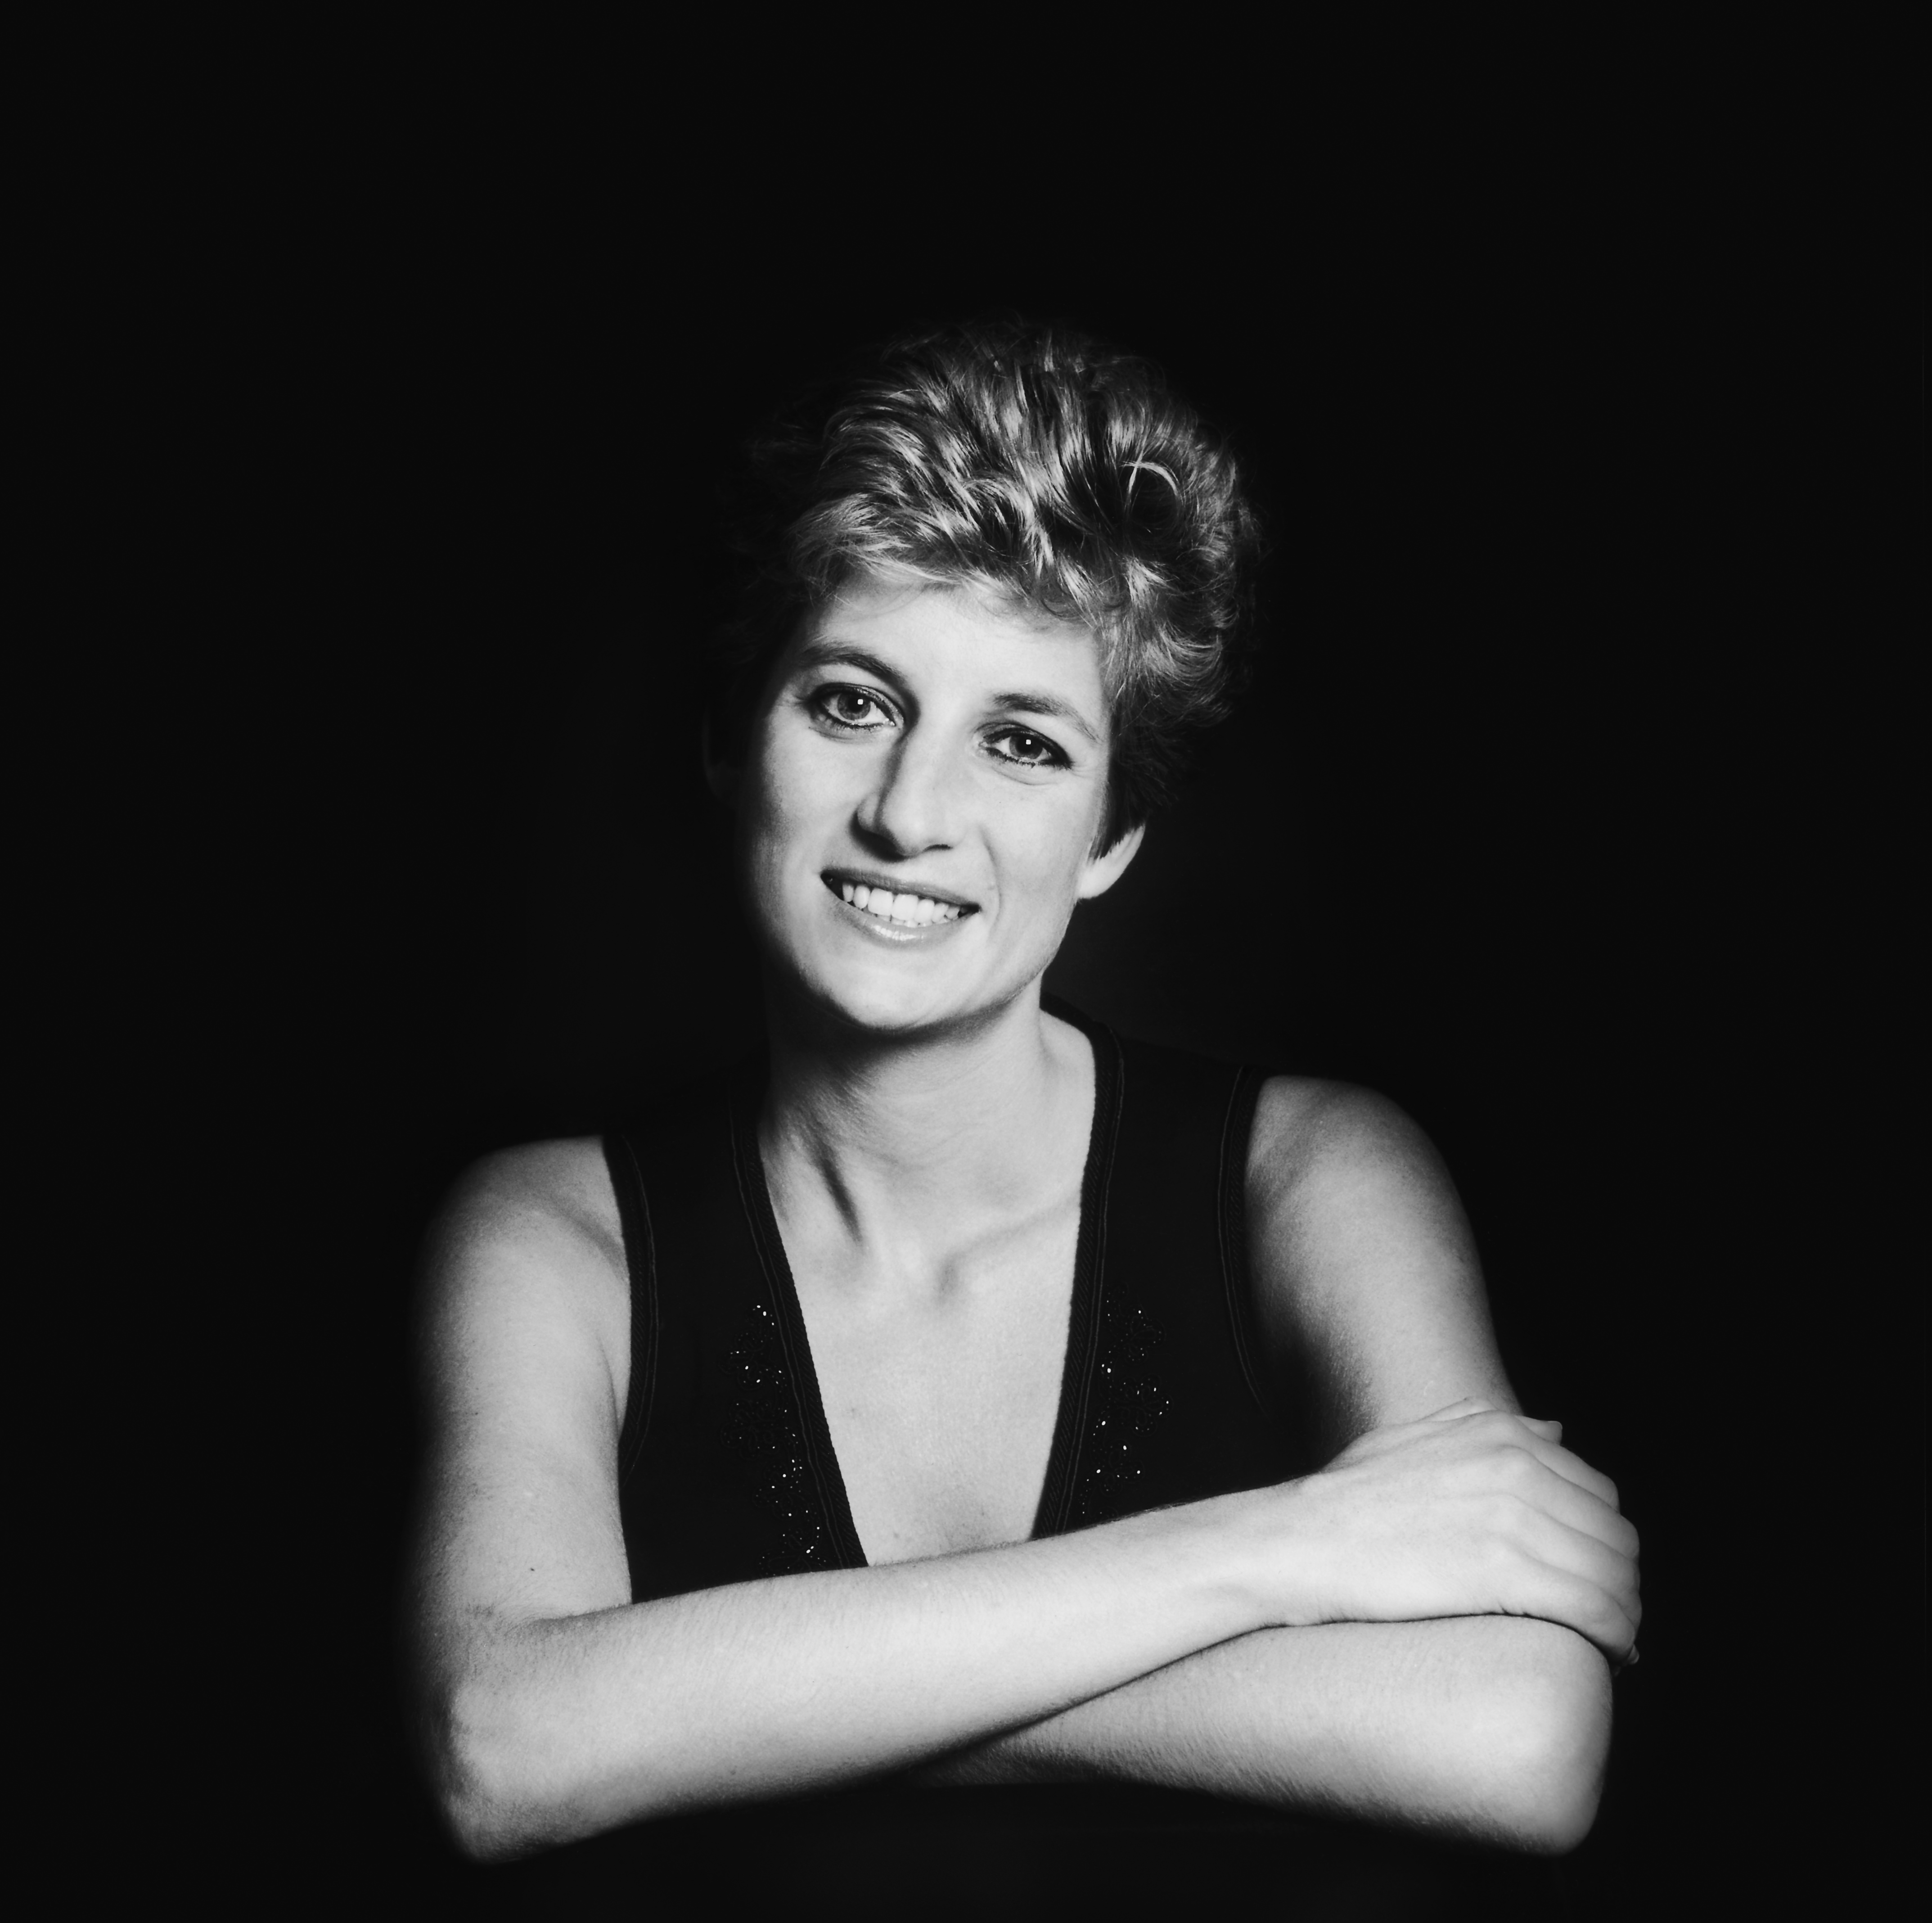 Twenty years after Princess Diana's death, this new film reveals her story in her own words. What emerges is the narrative of a shy young girl who stepped onto the world stage in 1980 and departed in 1997 as its most famous woman.